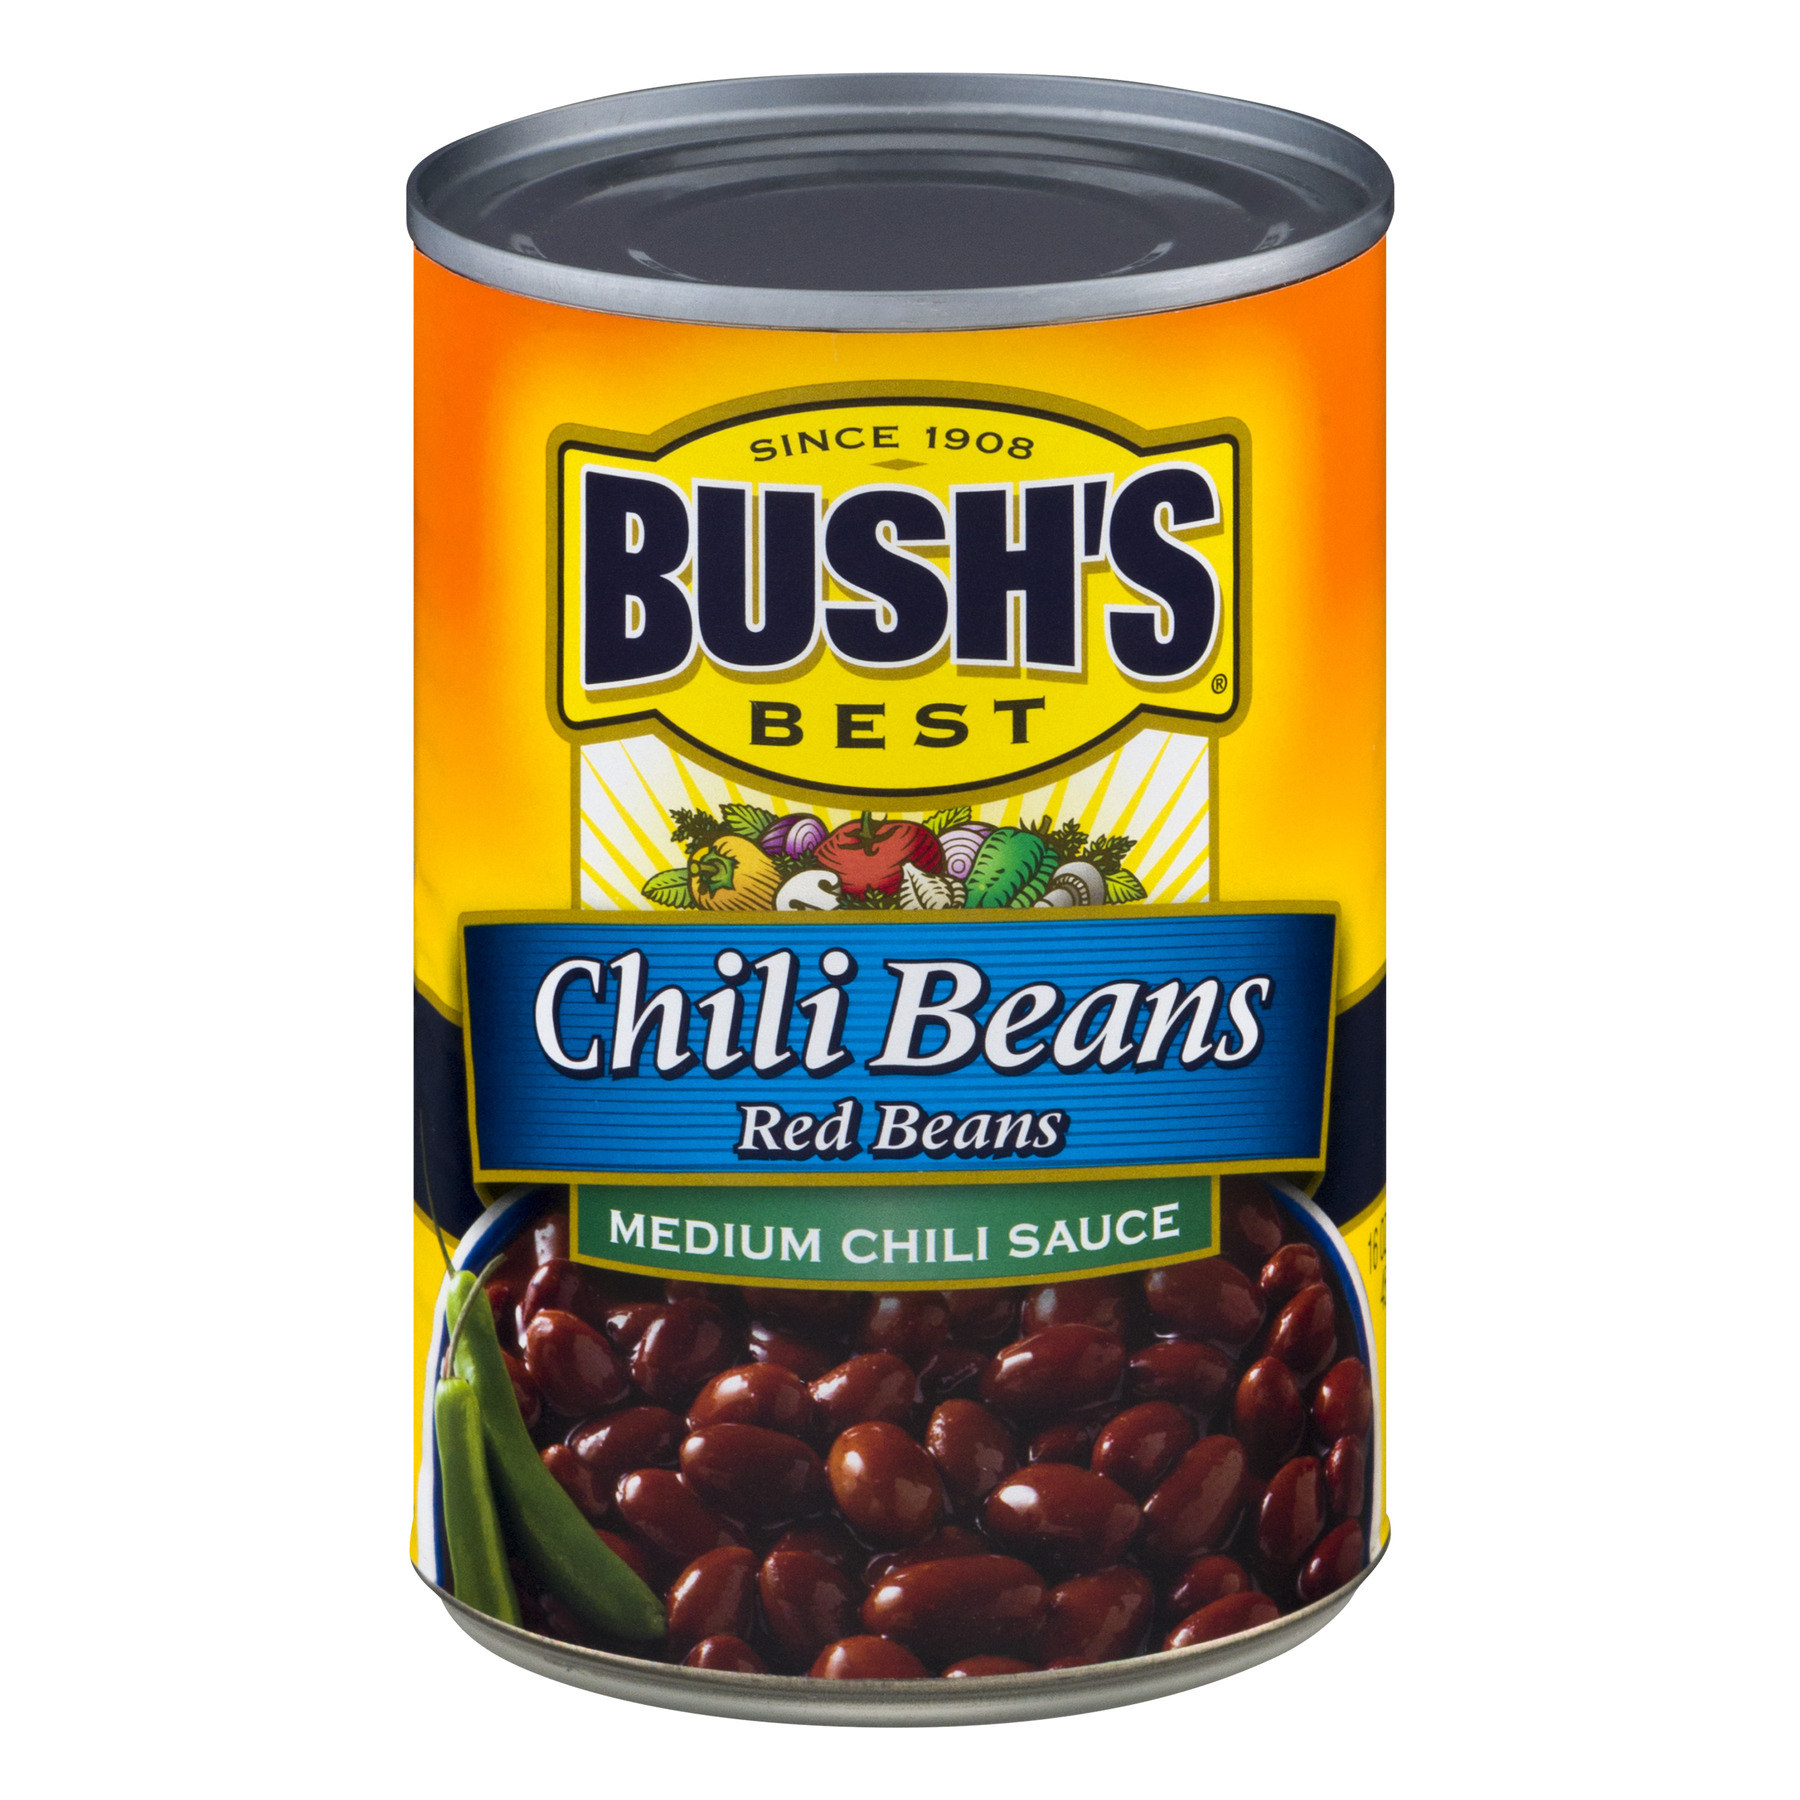 (6 Pack) BUSH'S Red Beans in a Medium Chili Sauce, 16 oz.